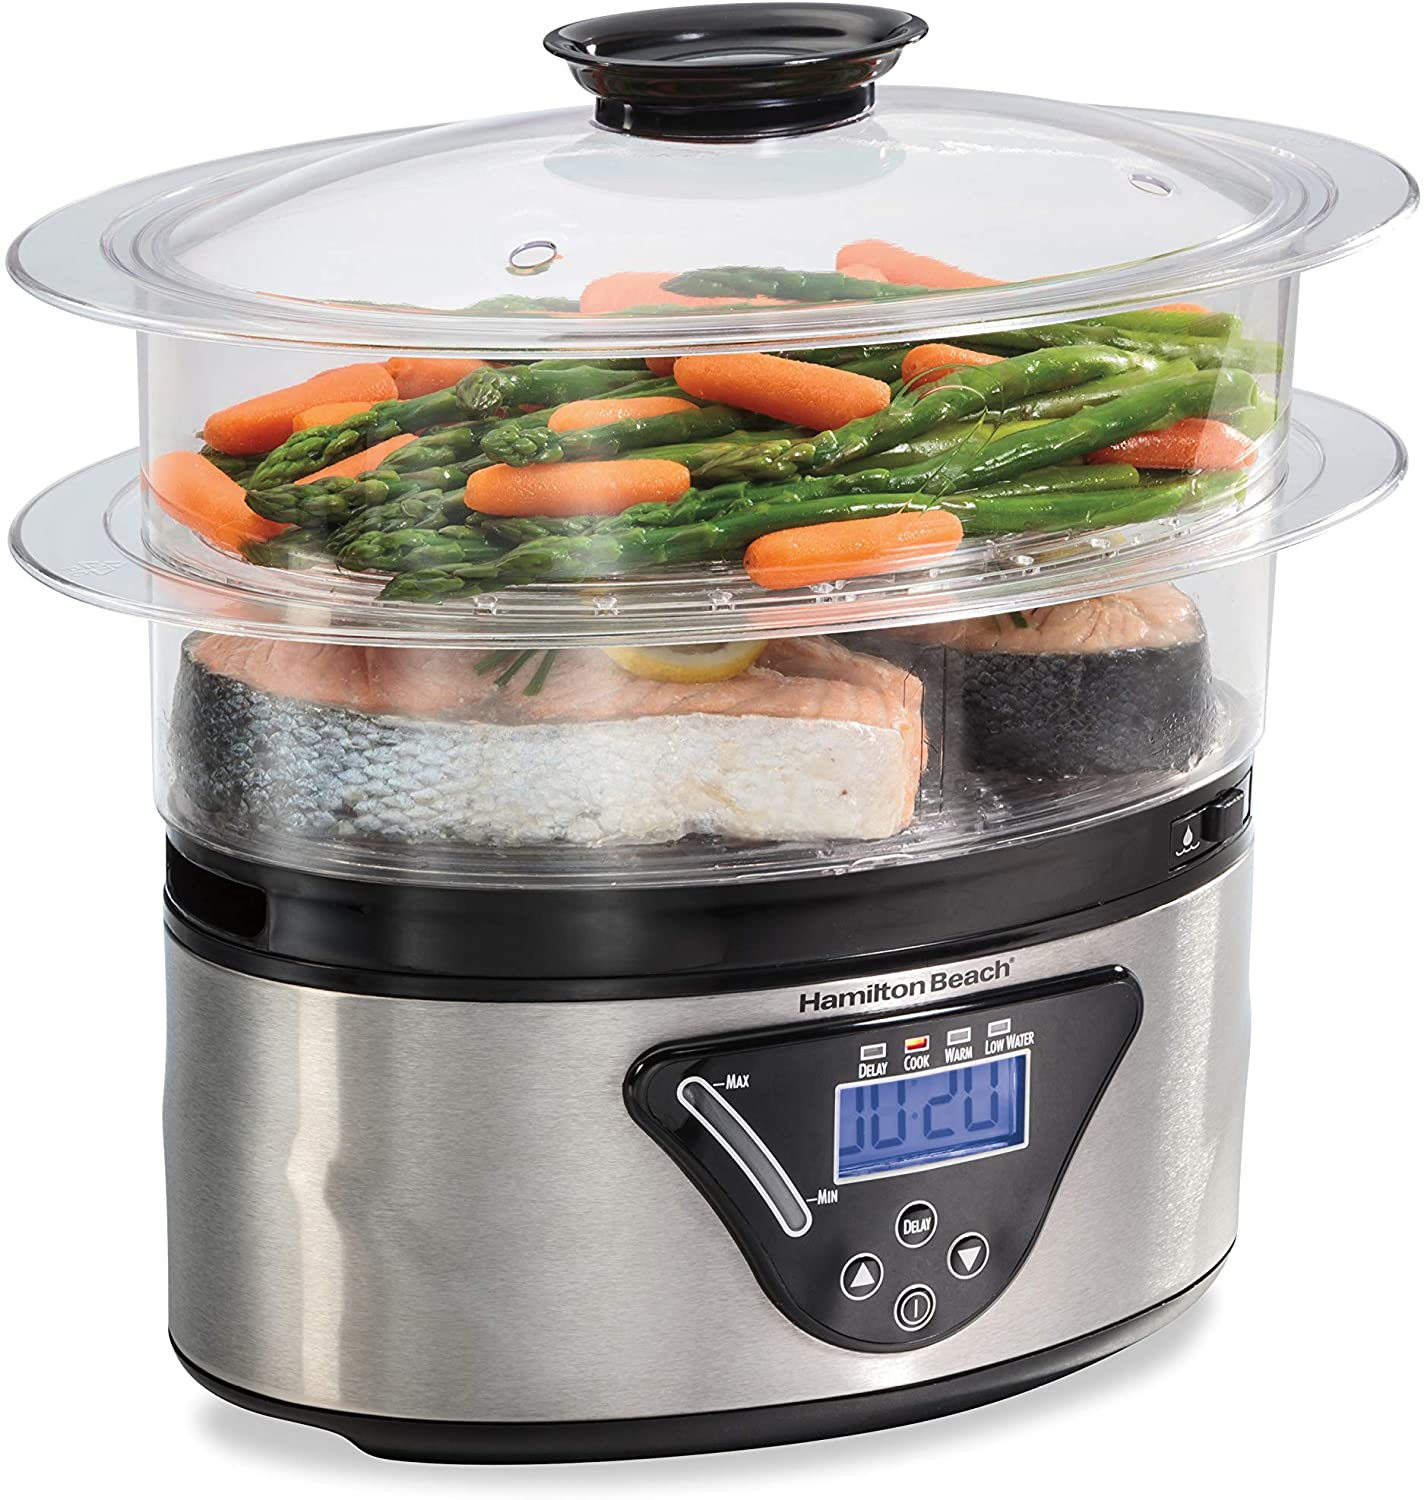 Hamilton Beach 37530A Digital Food Steamer, 5.5 Quart